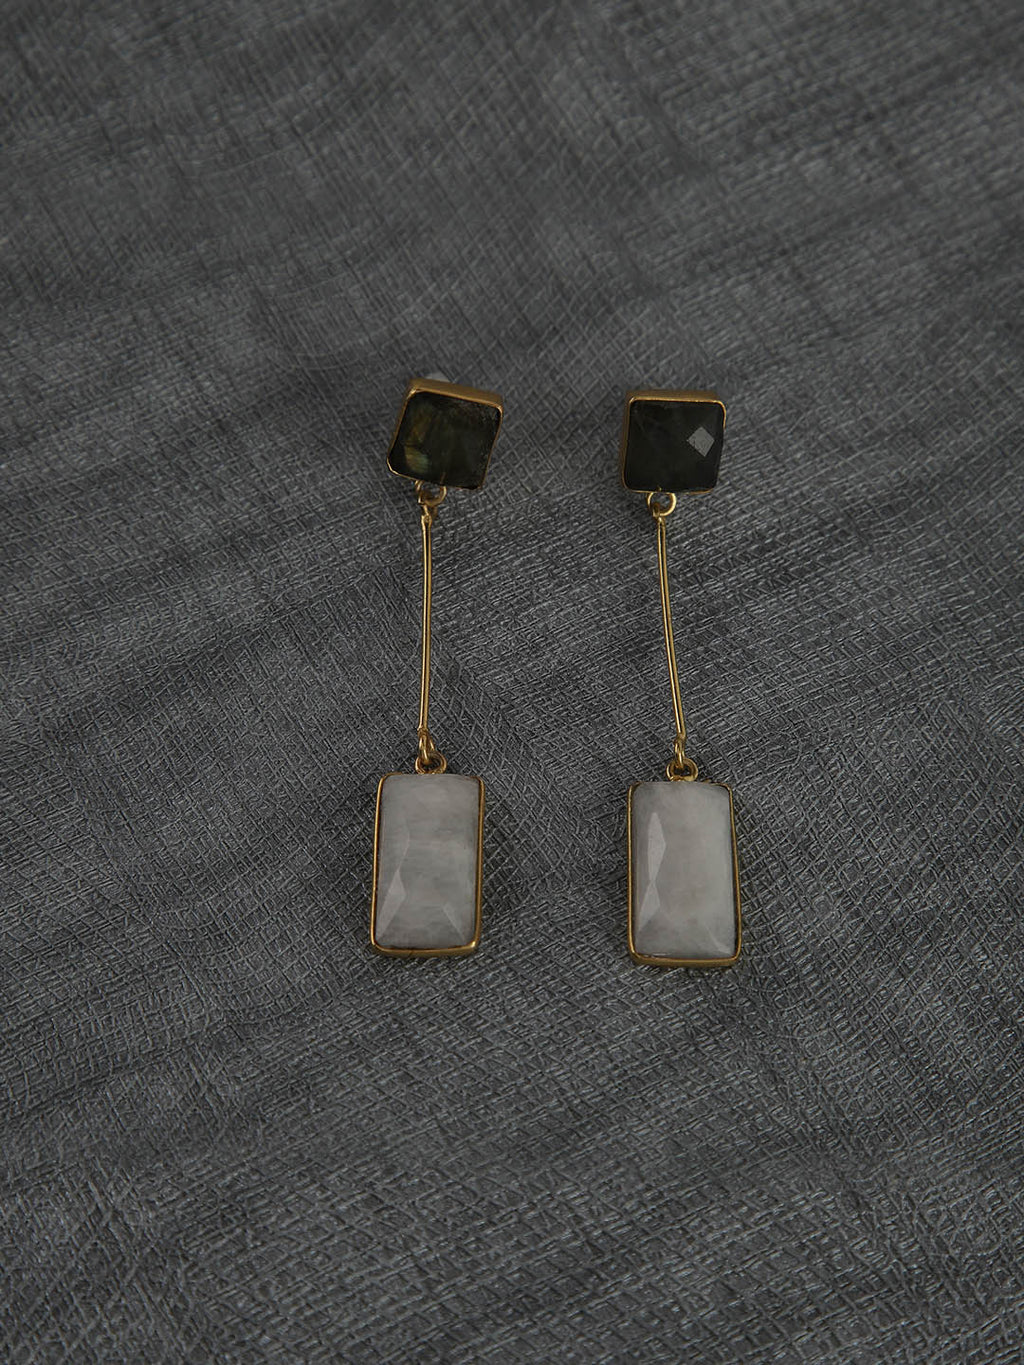 Gold Plated Multistone Drop Danglers - Labrodorite, Moonstone